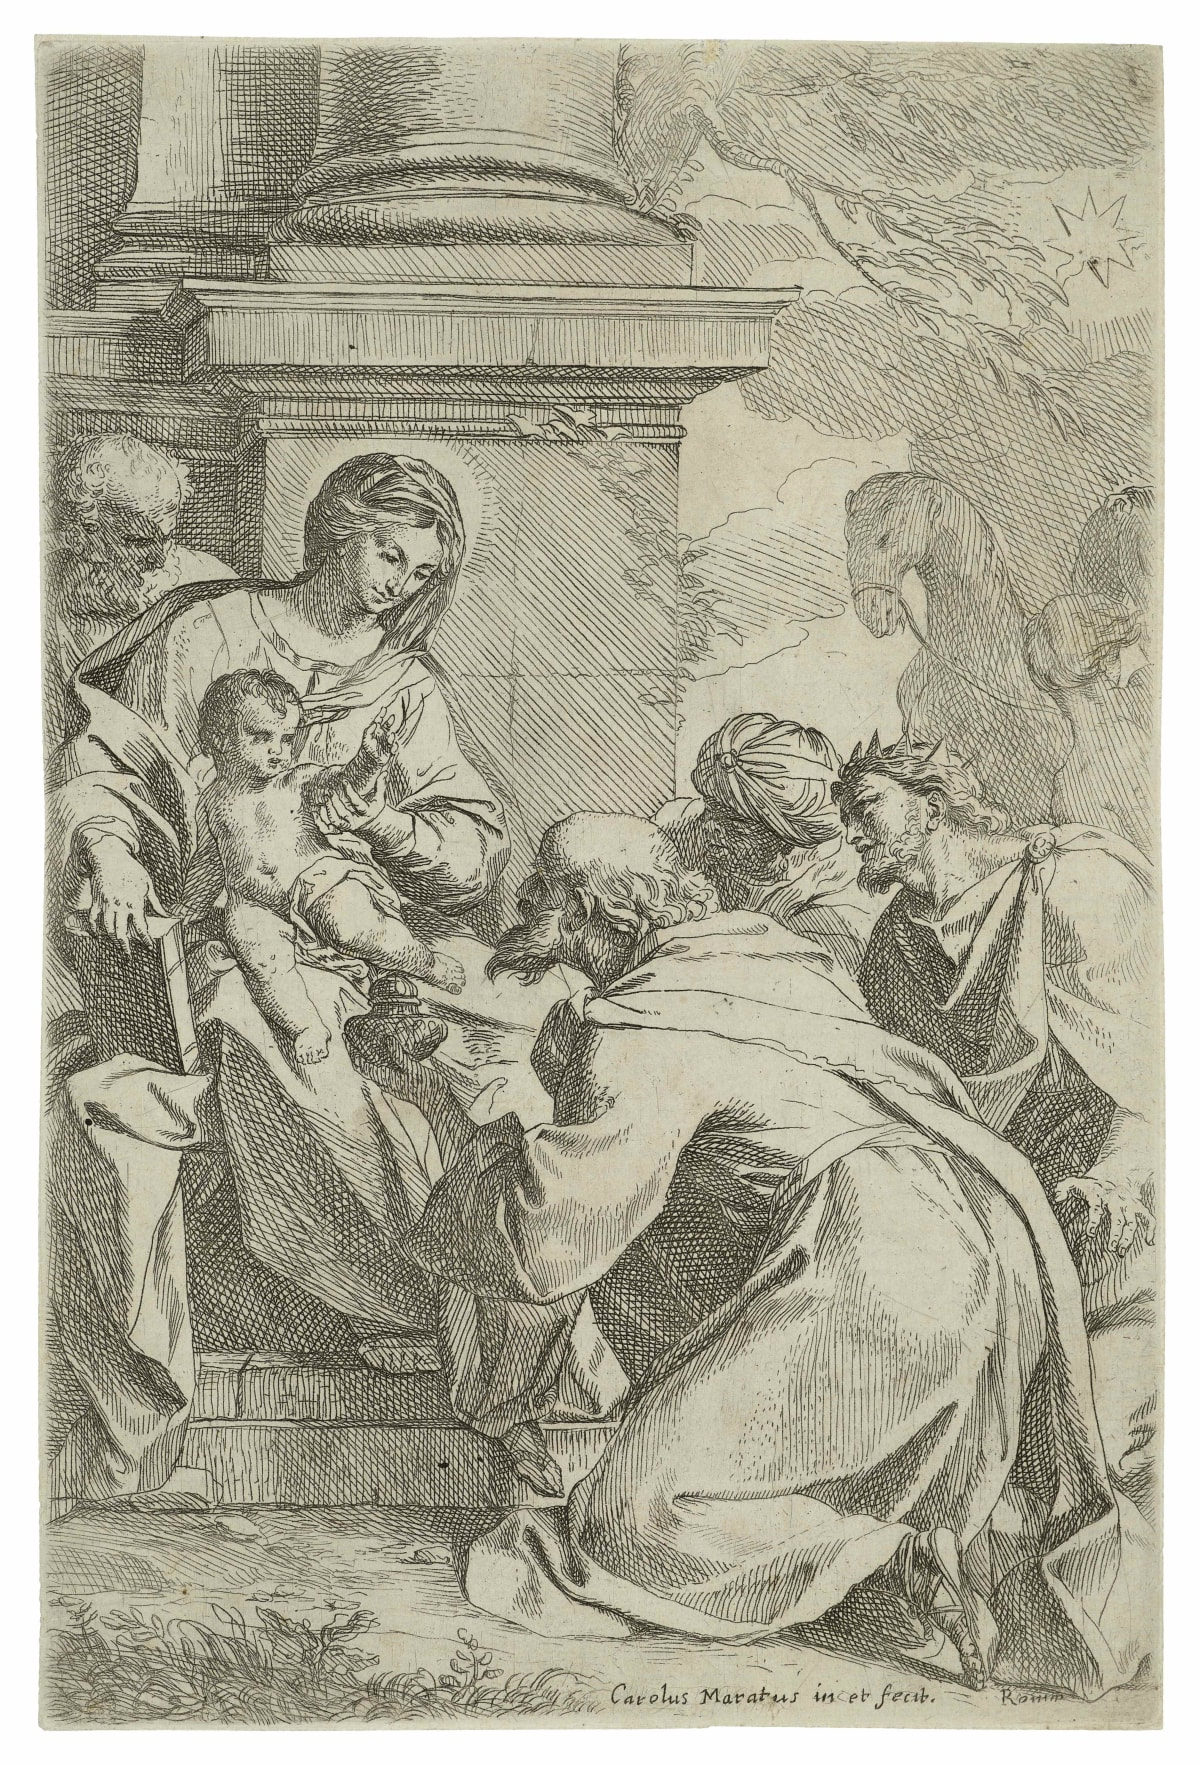 Carlo Maratti The Adoration of the Magi, with a camel in the background, 1625 - 1713 Etching Size of sheet: 21 x 14 cm.